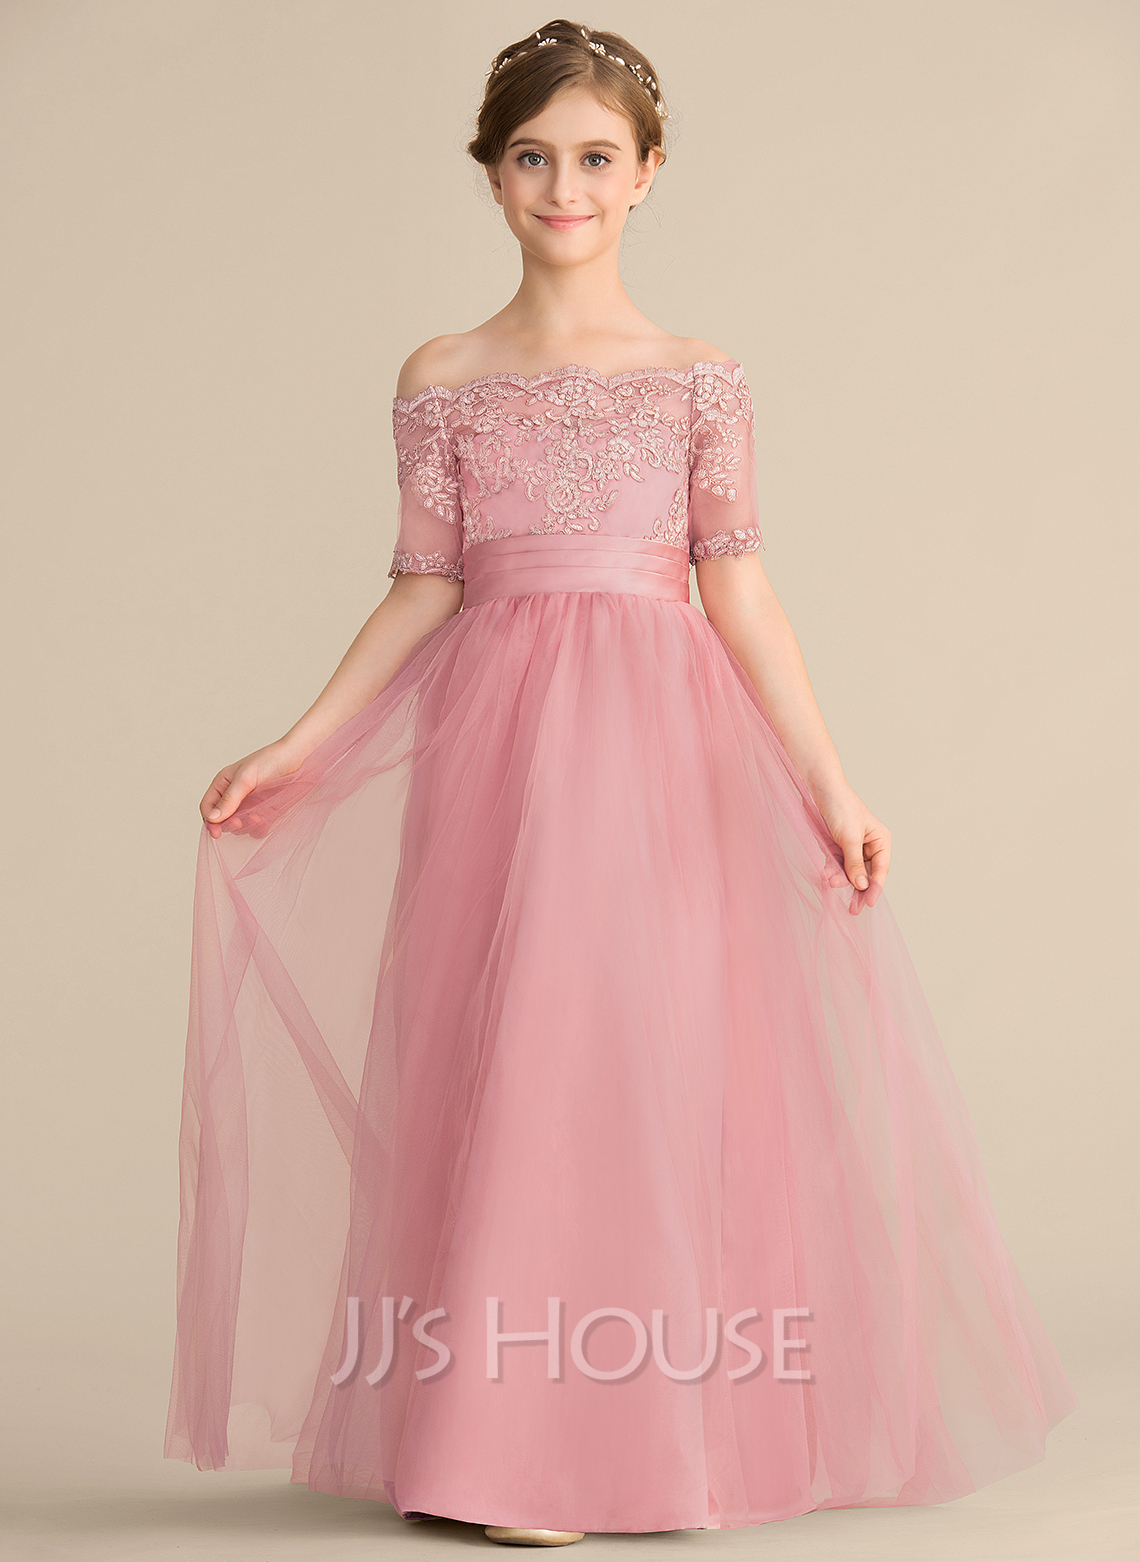 A-Line Off-the-Shoulder Floor-Length Tulle Lace Junior Bridesmaid Dress With Bow(s)